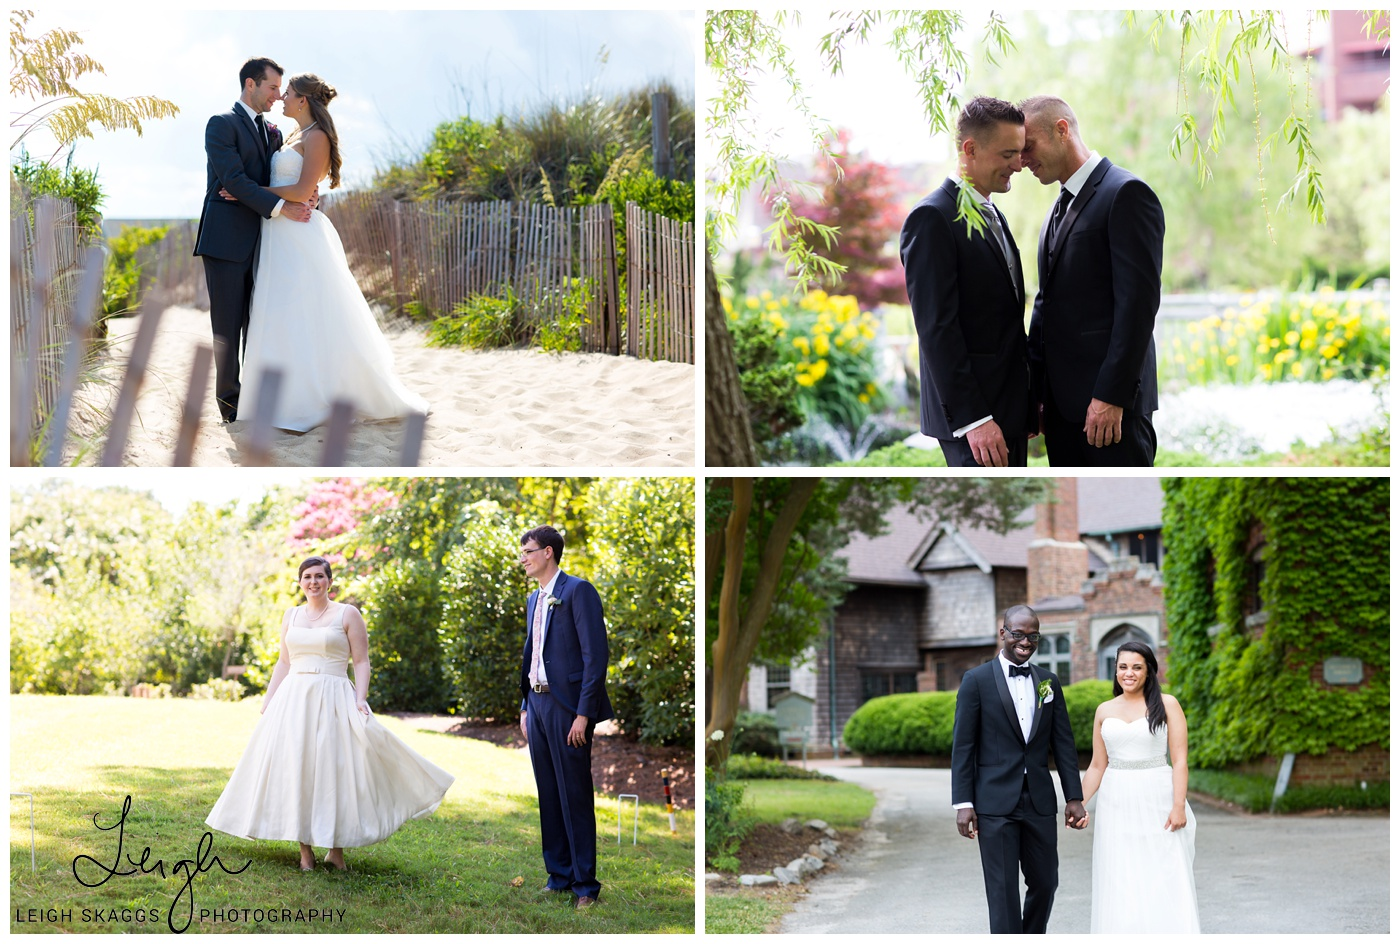 Ask the Experts | Leigh Skaggs Photography